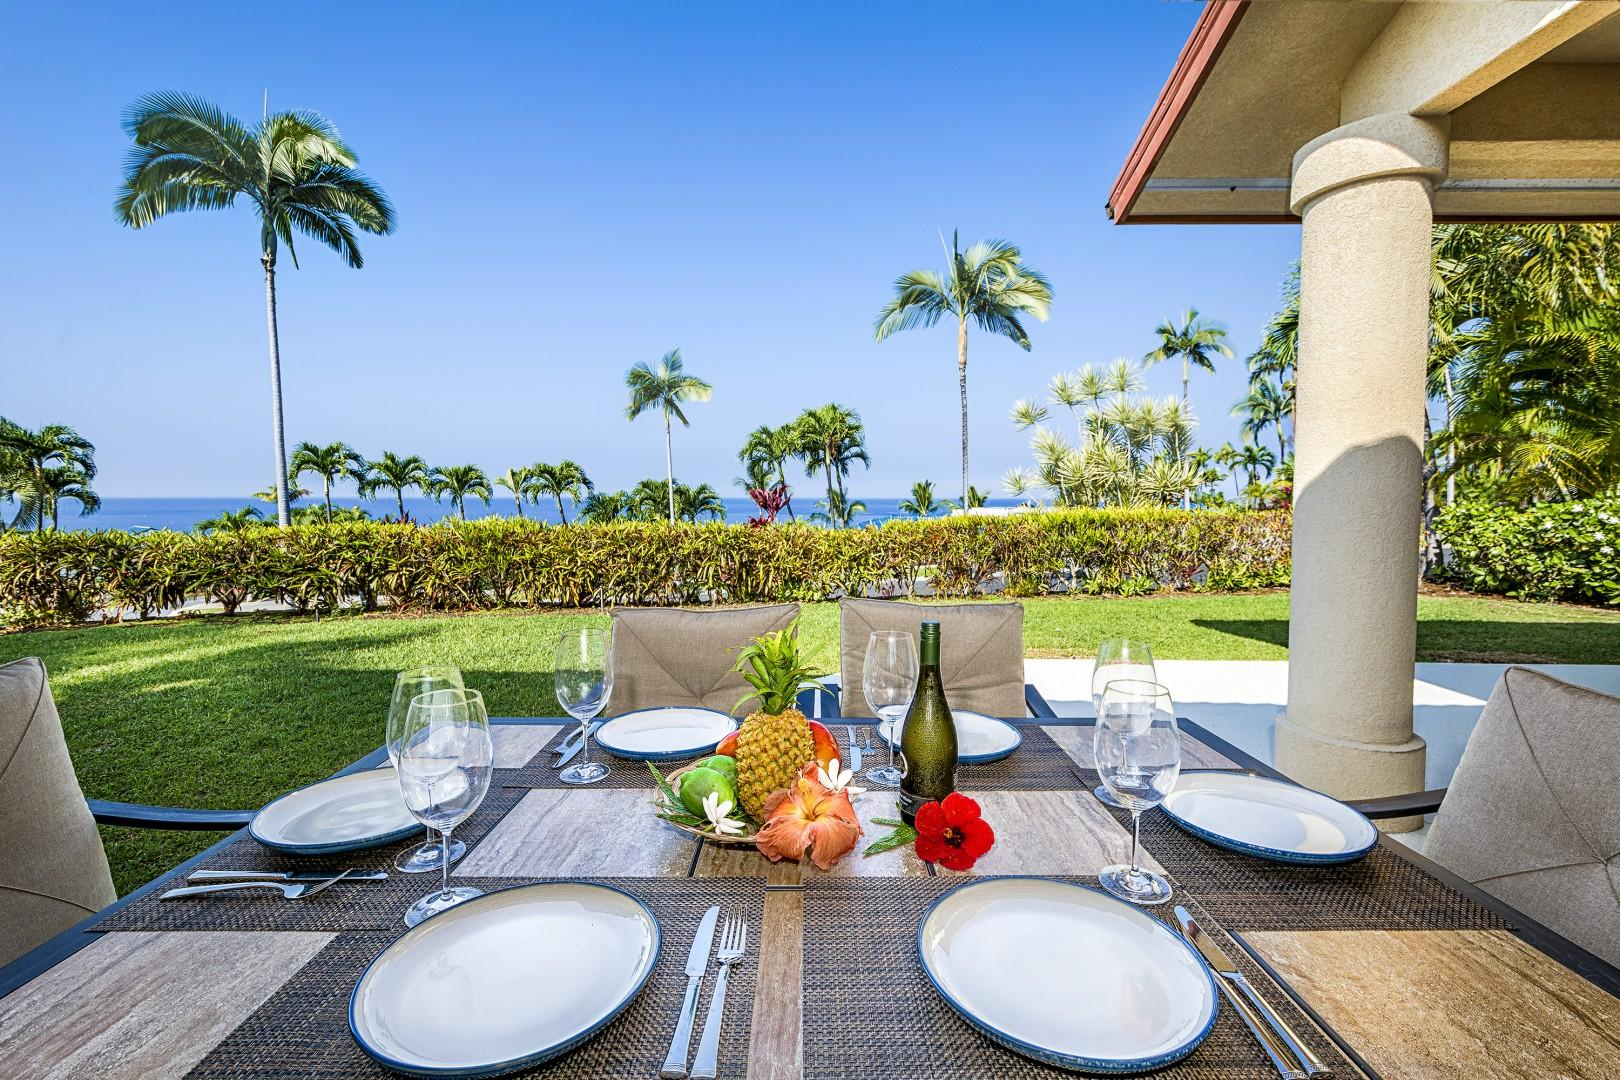 Enjoy water views and a home made meal on the spacious partially covered Lanai!